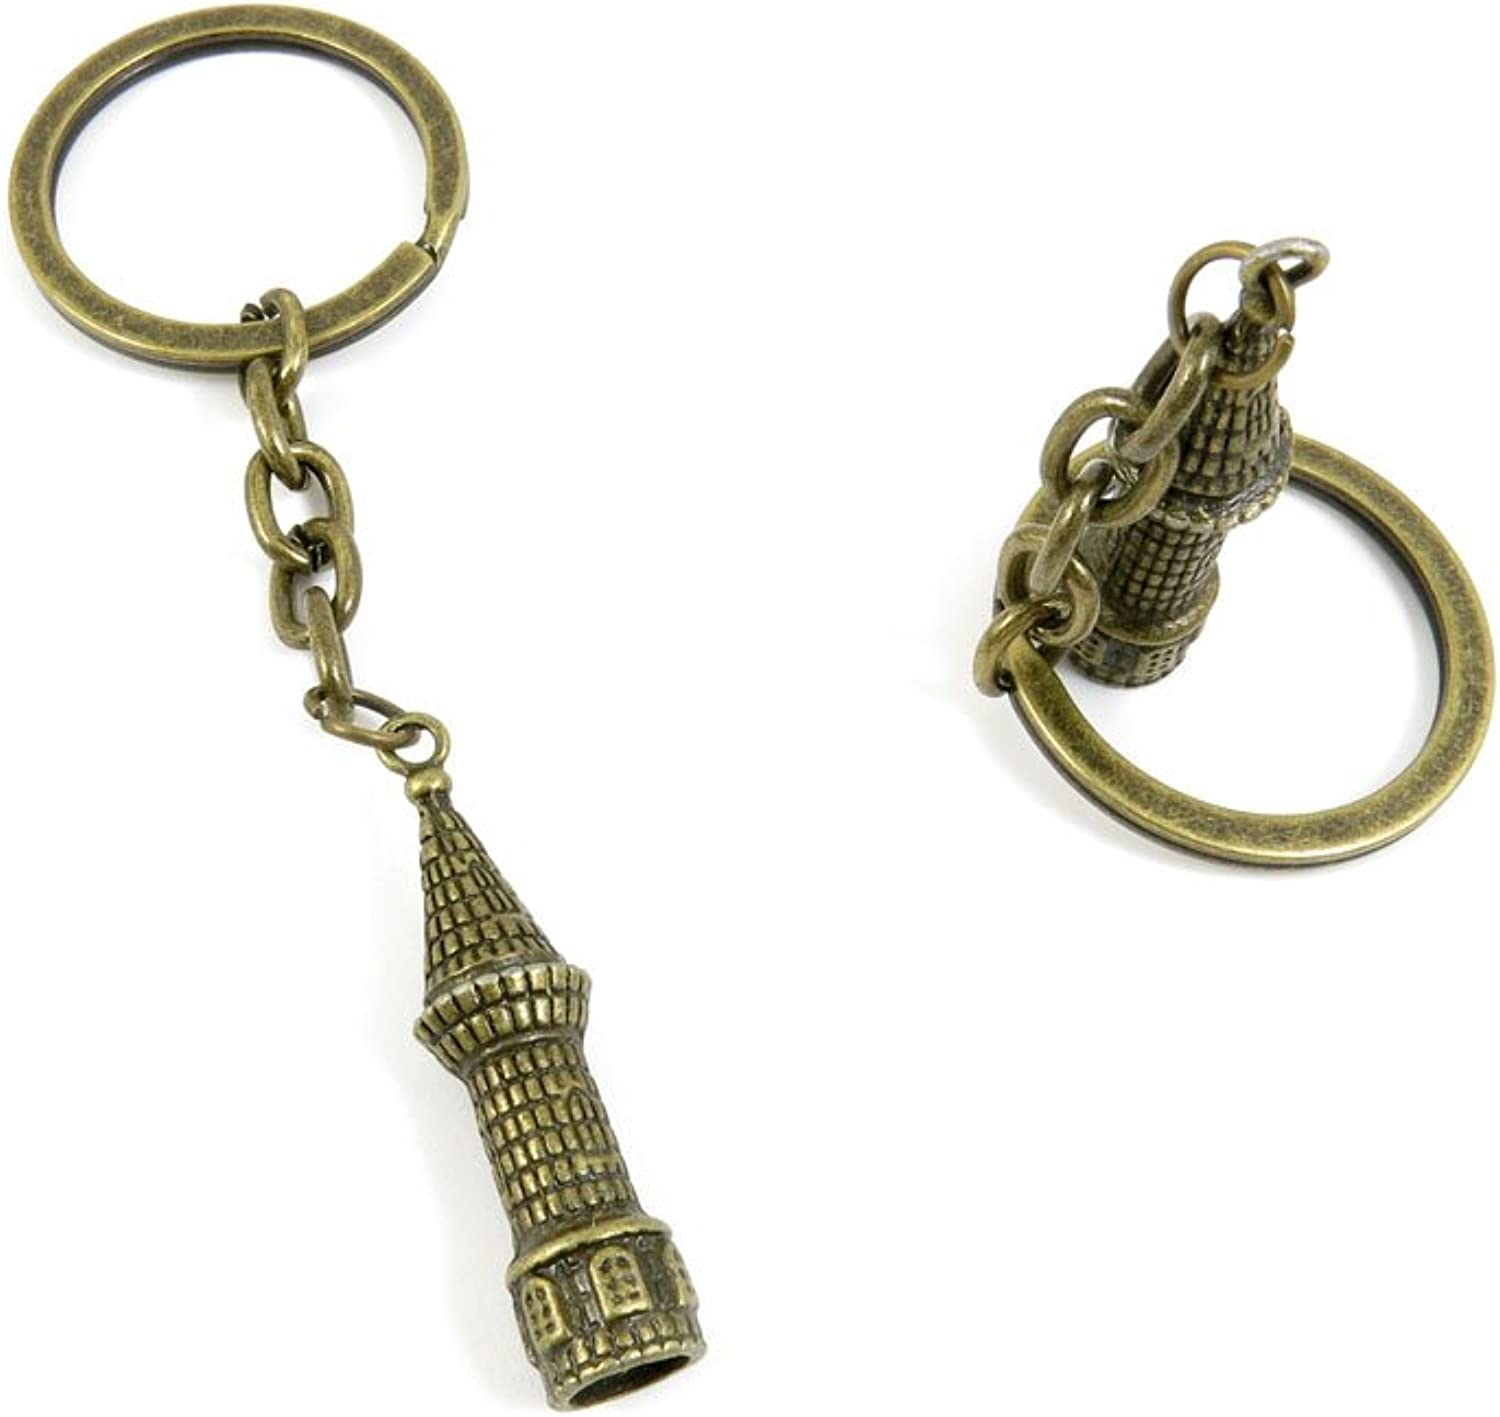 100 Pieces Fashion Jewelry Keyring Keychain Door Car Key Tag Ring Chain Supplier Supply Wholesale Bulk Lots A3OZ2 Castle